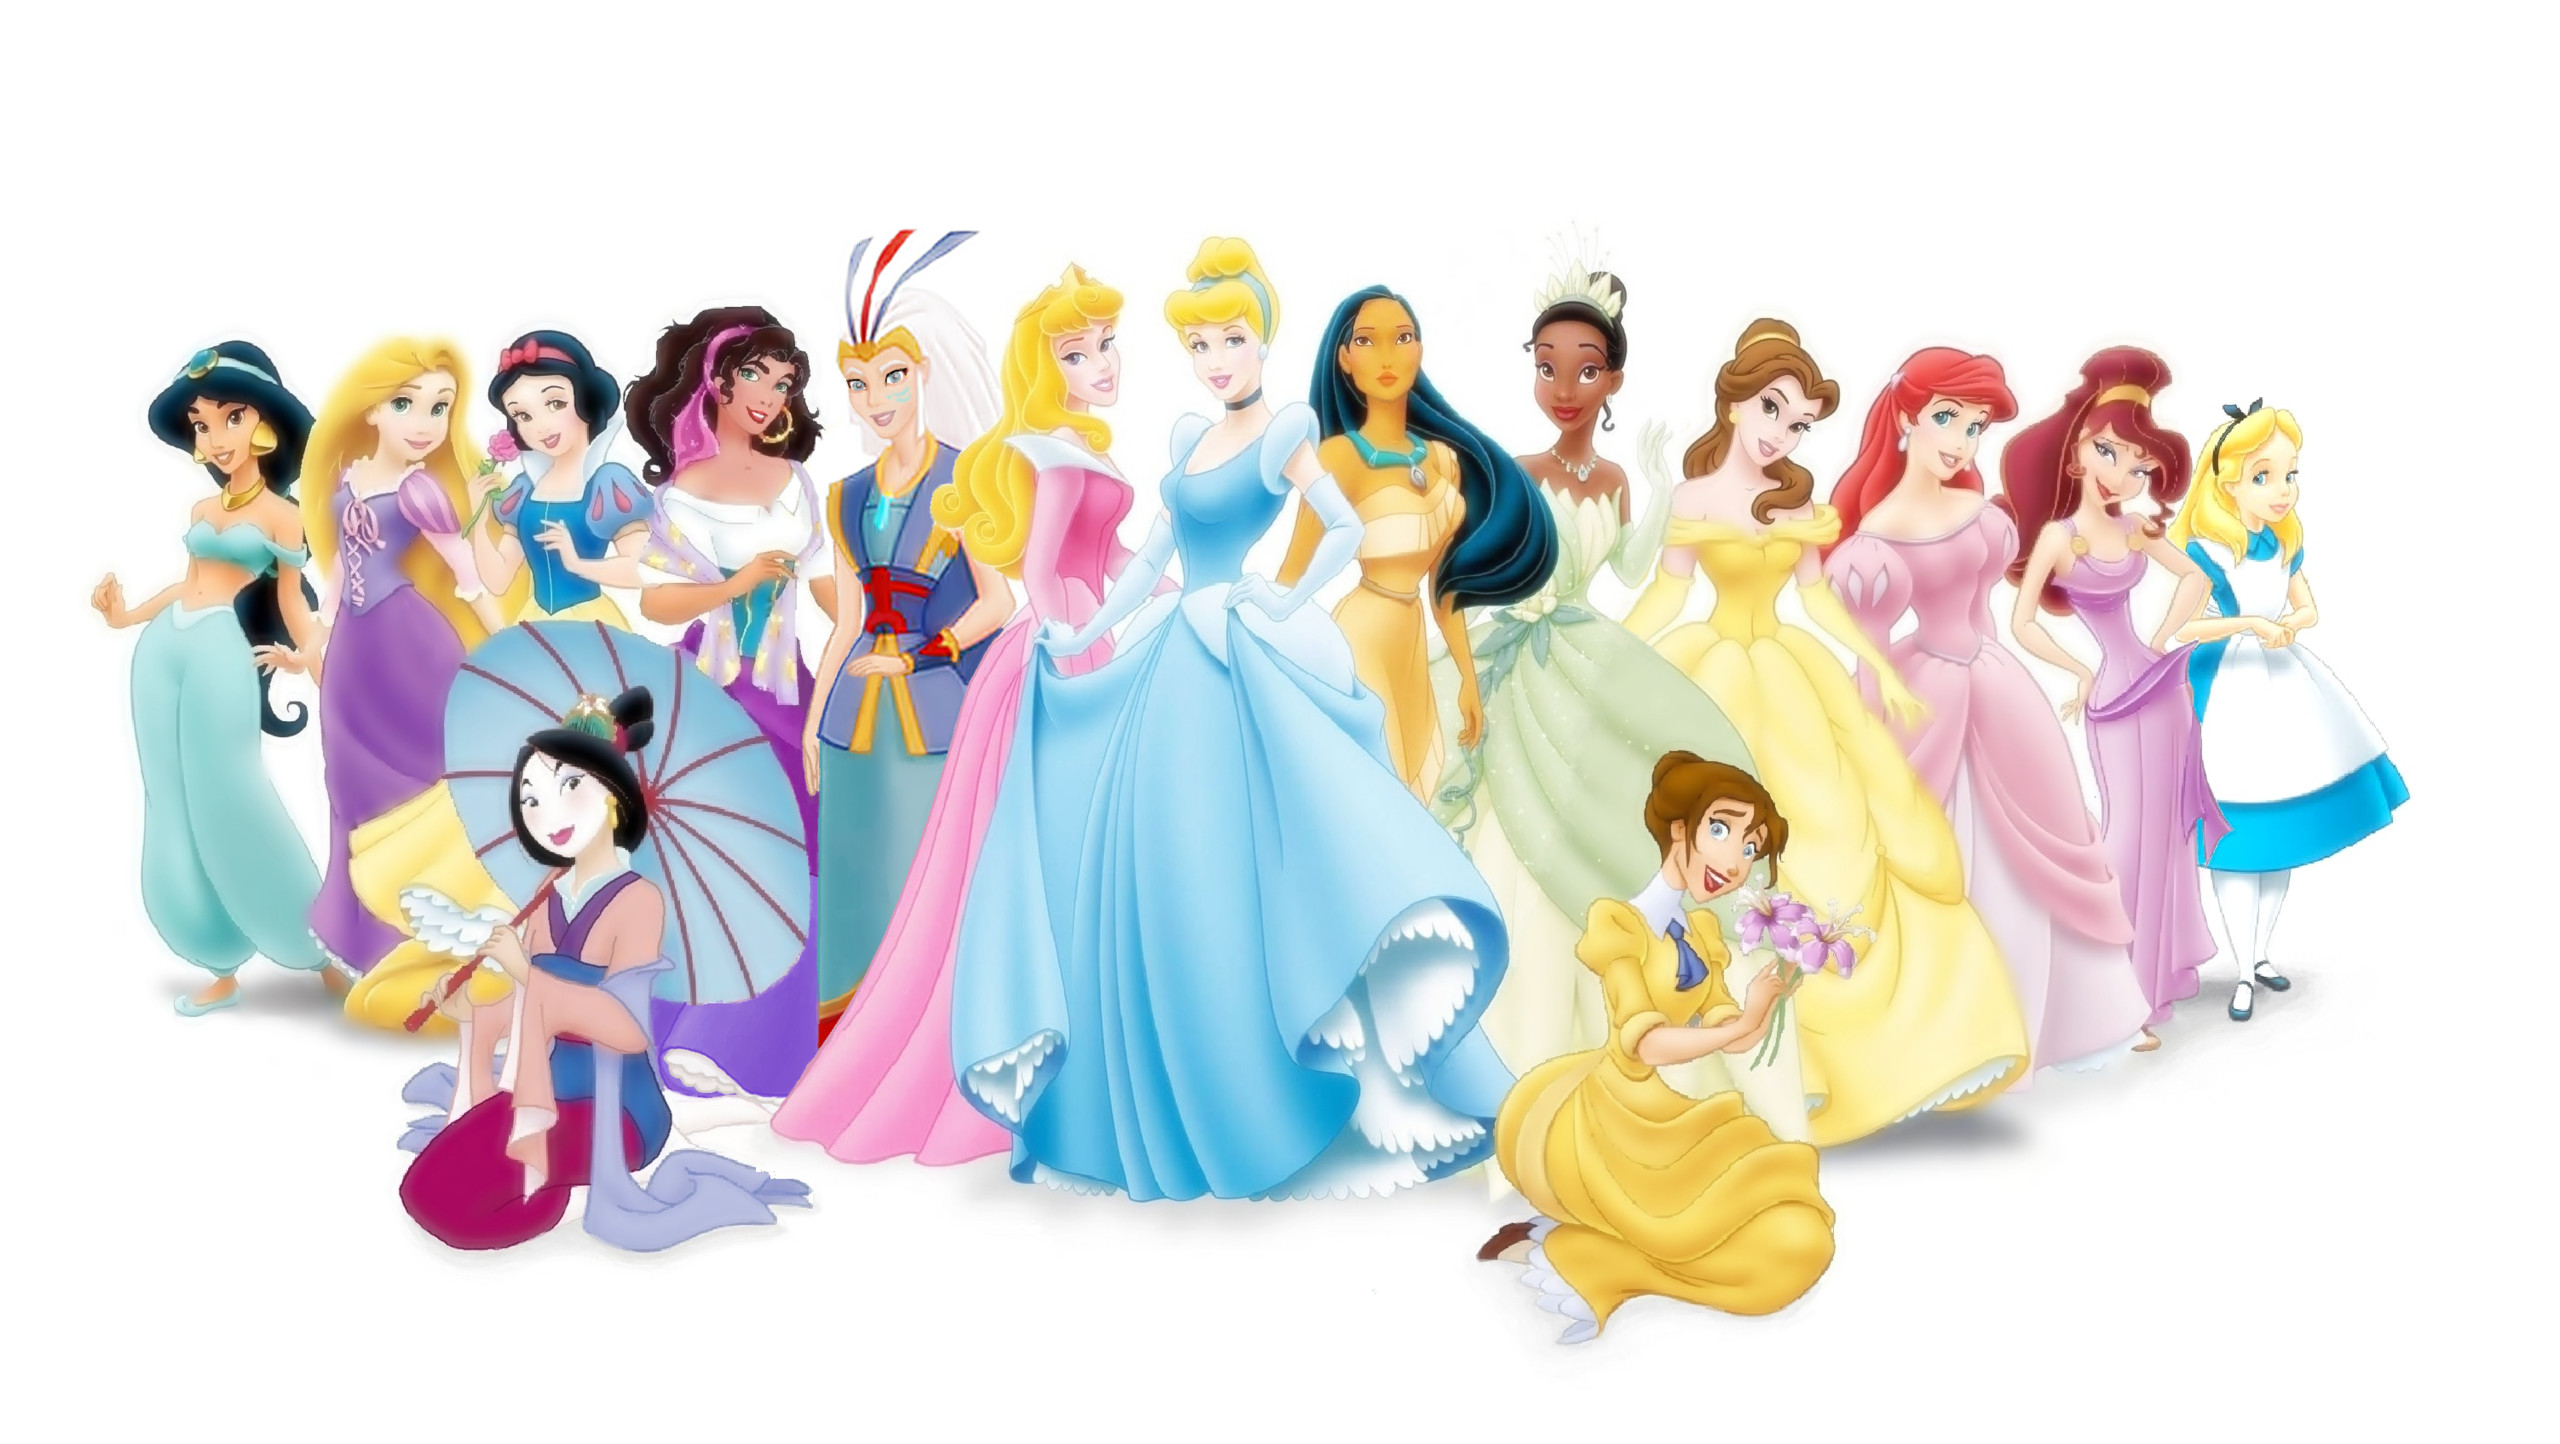 Disney princess wallpapers 66 images 1920x1200 princesas disney imagenes hd thecheapjerseys Choice Image